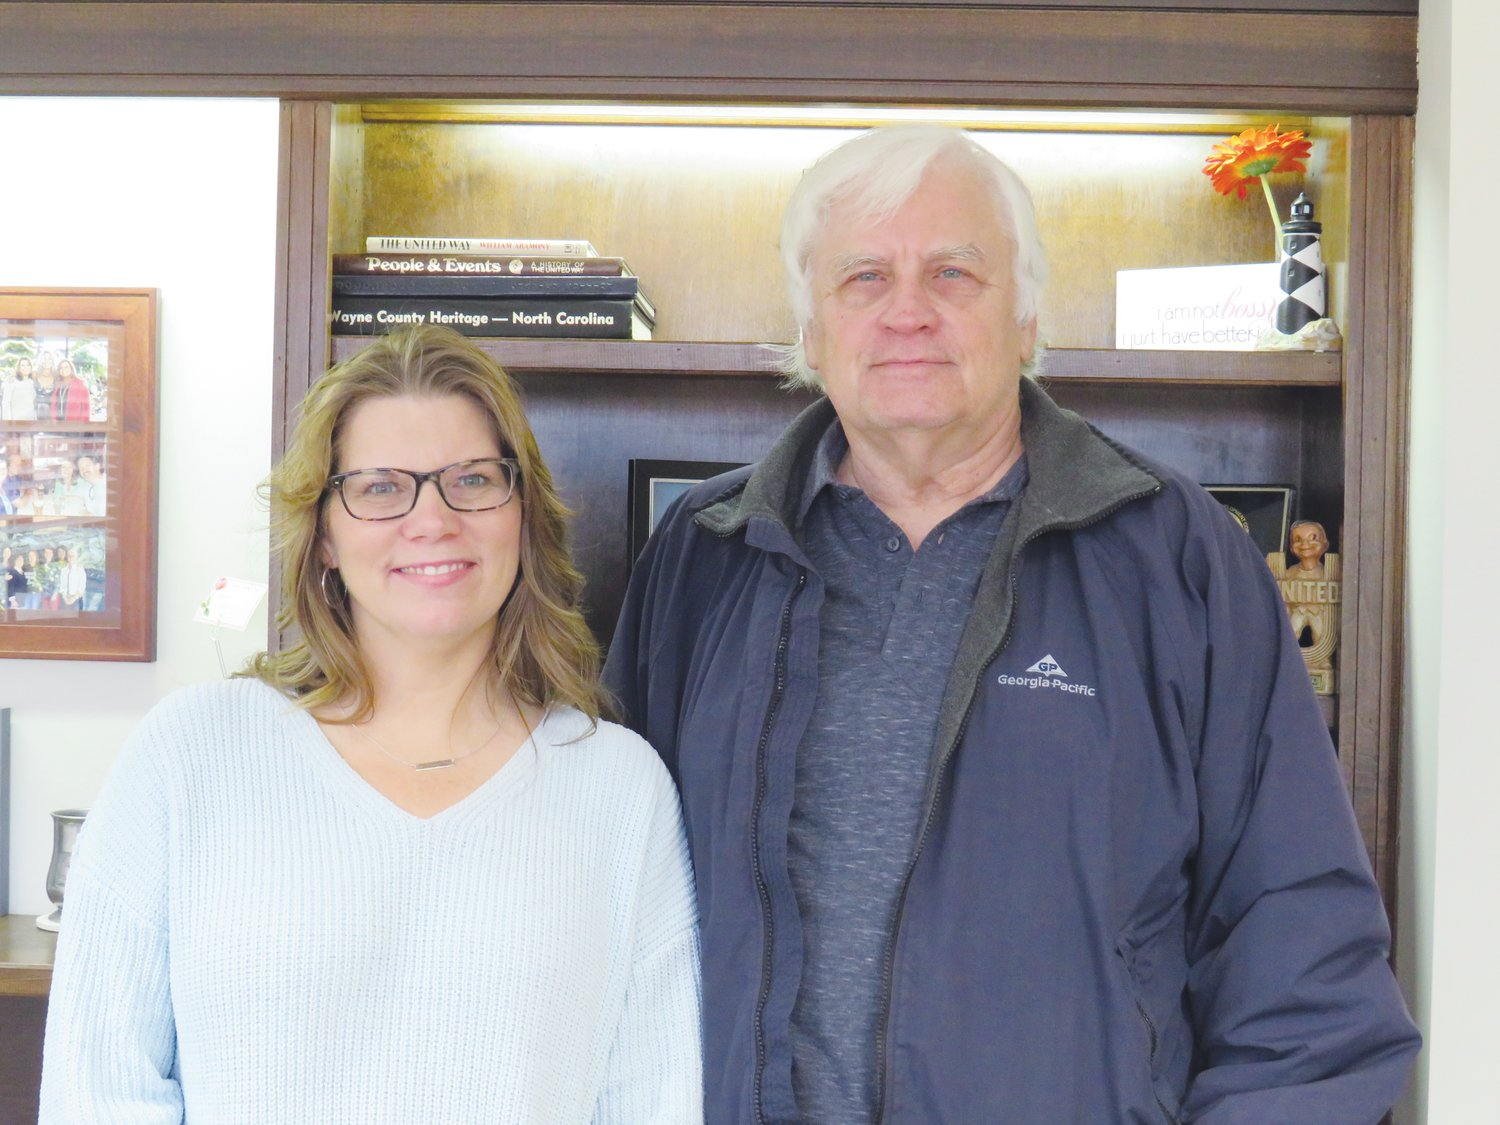 Pictured are Sherry Archibald and Ray Urban. A grant was awarded for Emergency Assistance provided by Society of St. Vincent de Paul to provide help for those facing emergency need related to food, utilities or rent payments. Society of St. Vincent de Paul is a completely volunteer run organization.